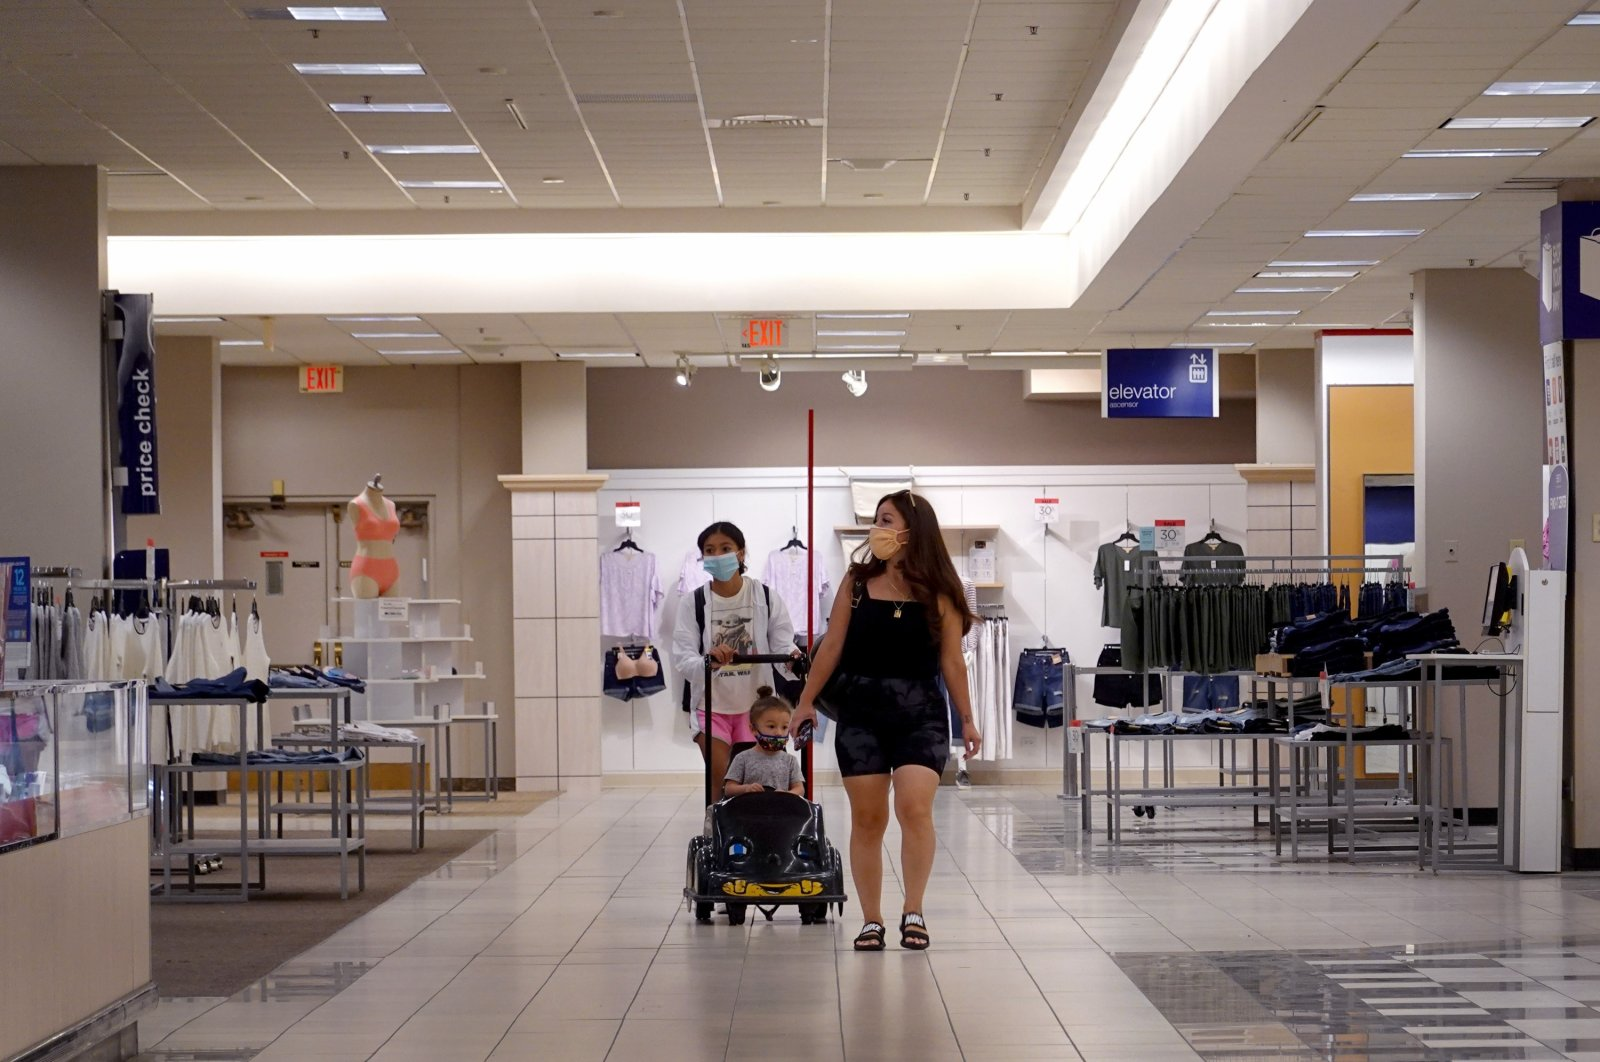 Customers walk through a department store in a shopping mall, Chicago, Illinois, U.S., Aug. 17, 2021 (AFP Photo)